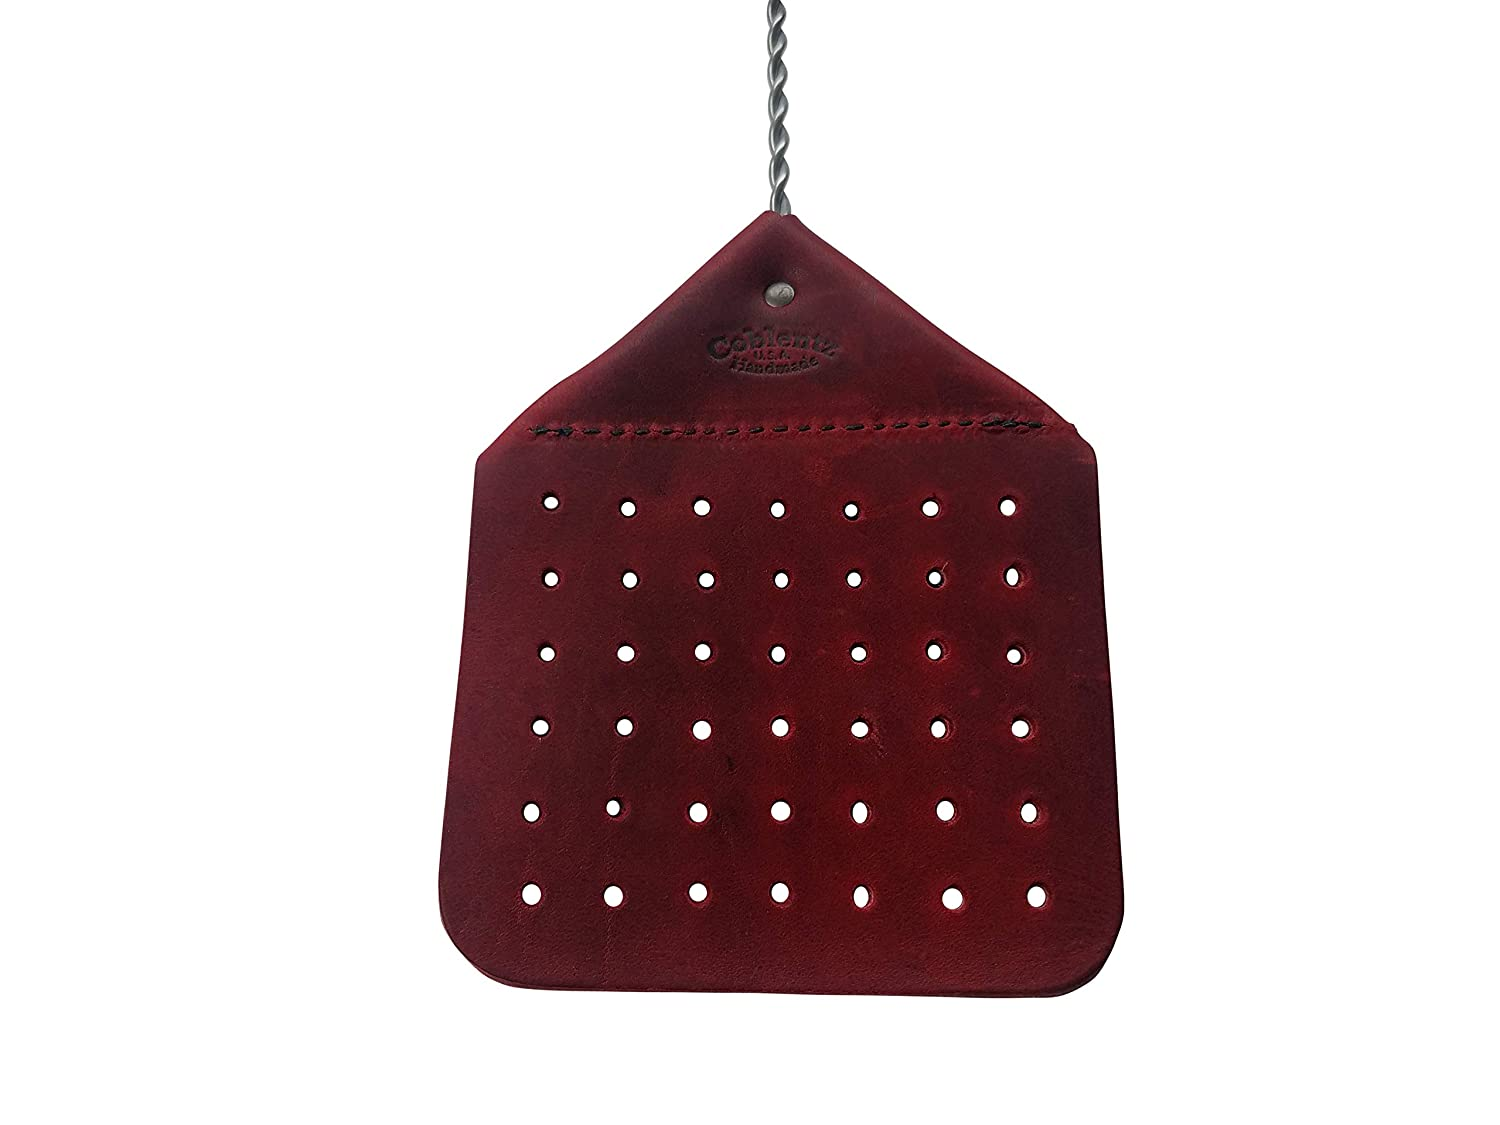 Amish Leather Fly Swatter Handcrafted Wire Handle Flyswatter Choice of Color (Black) Coblentz Leather